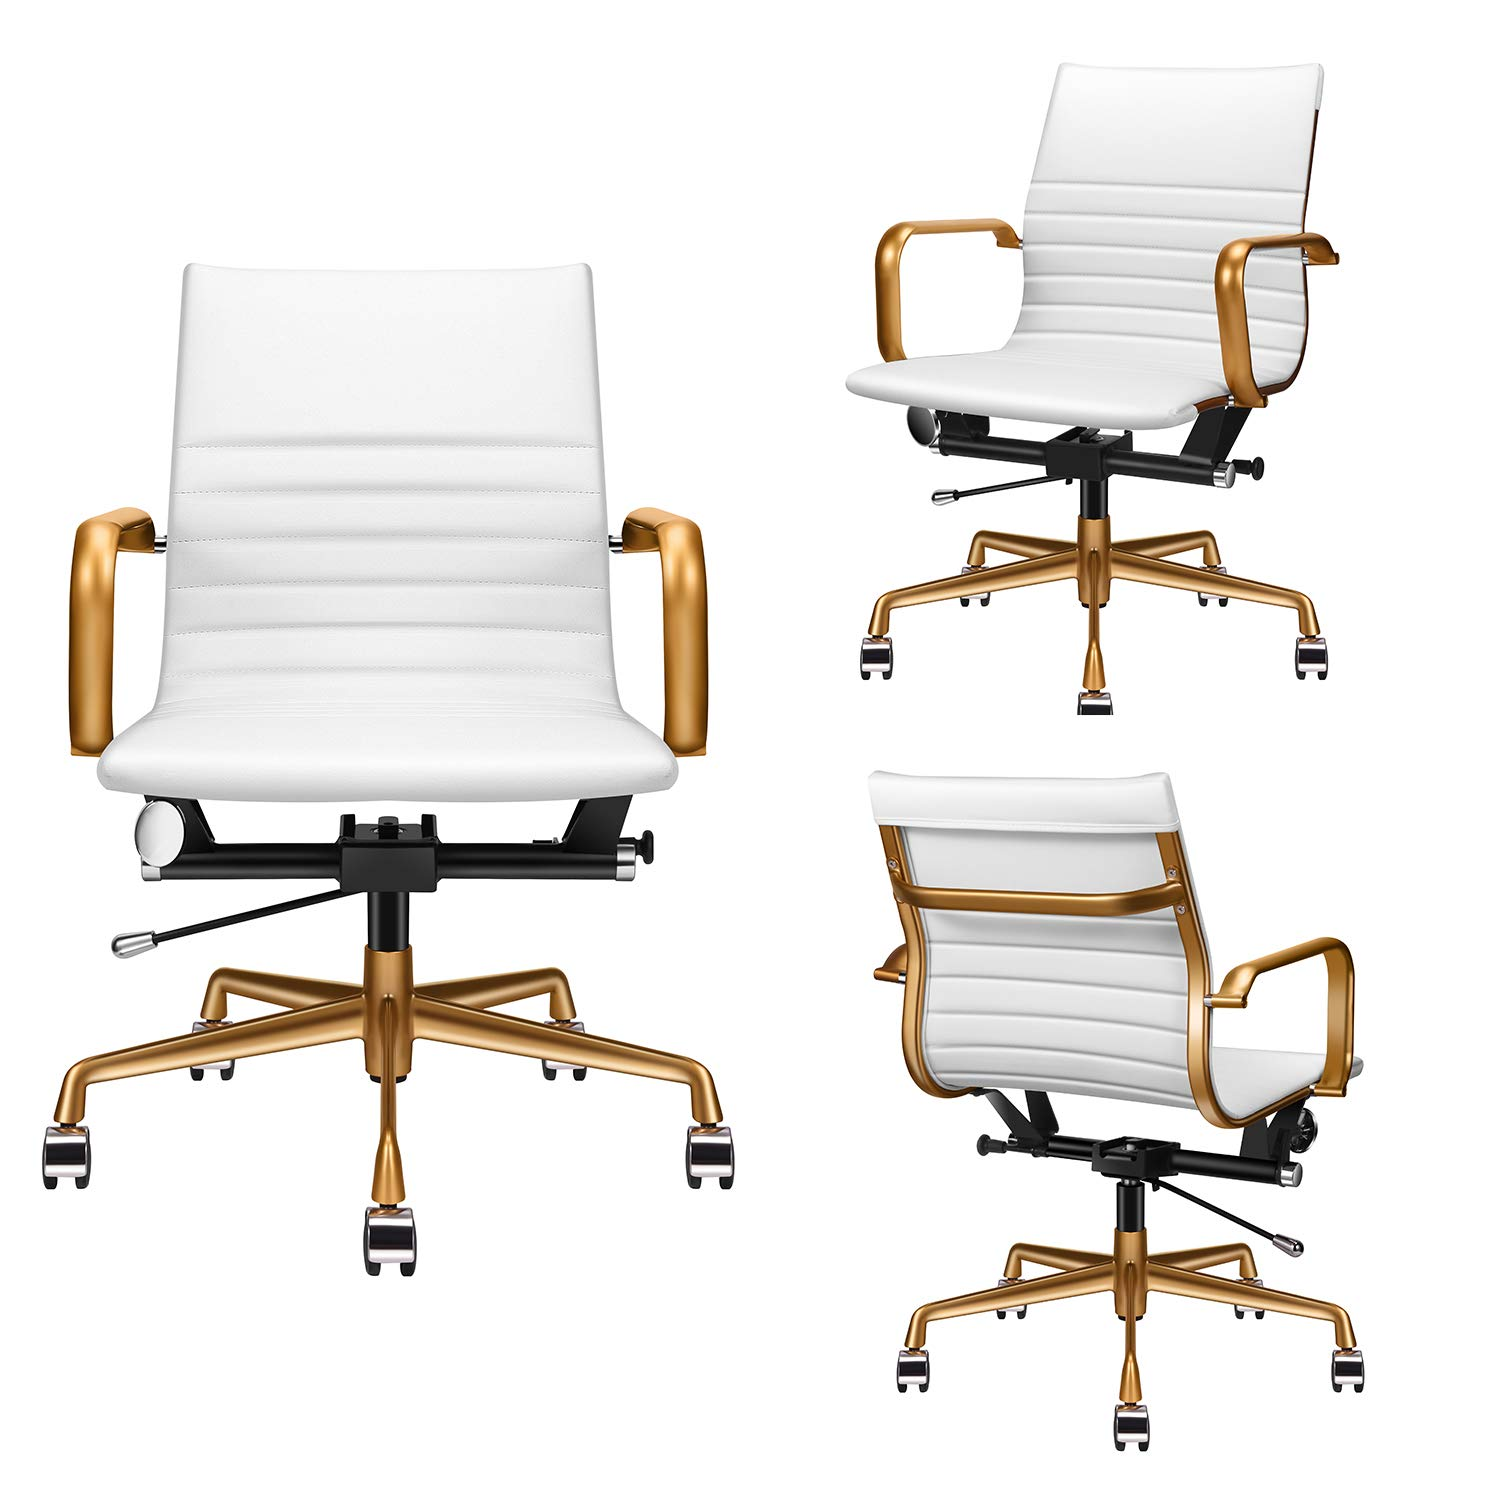 Black Study Chair Ergonomic Desk Chair With Back Lumbar Support Mid Back Desk Chair Black Receptionist Chairs Mid Back Office Chair Black LUXMOD Black Office Chair Ergonomic Desk Chair With Arms